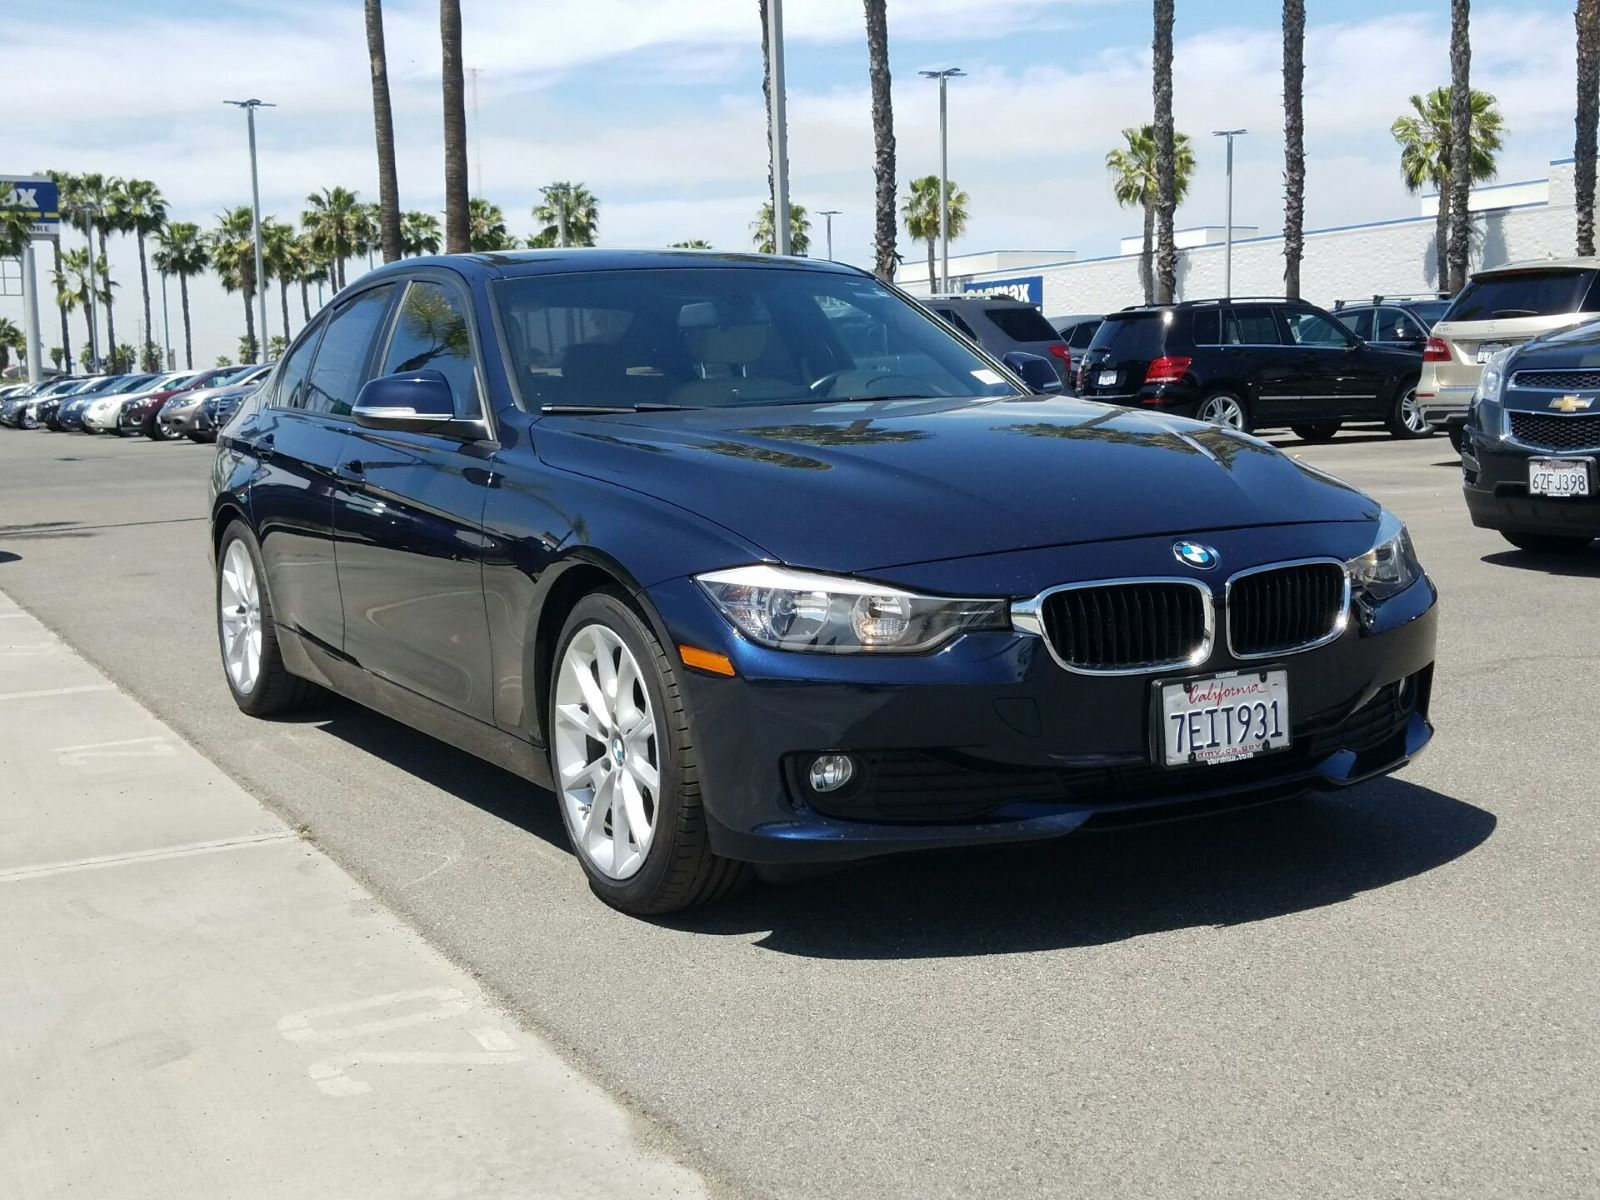 Carmax Near Me Used Cars For Sale | Convertible Cars